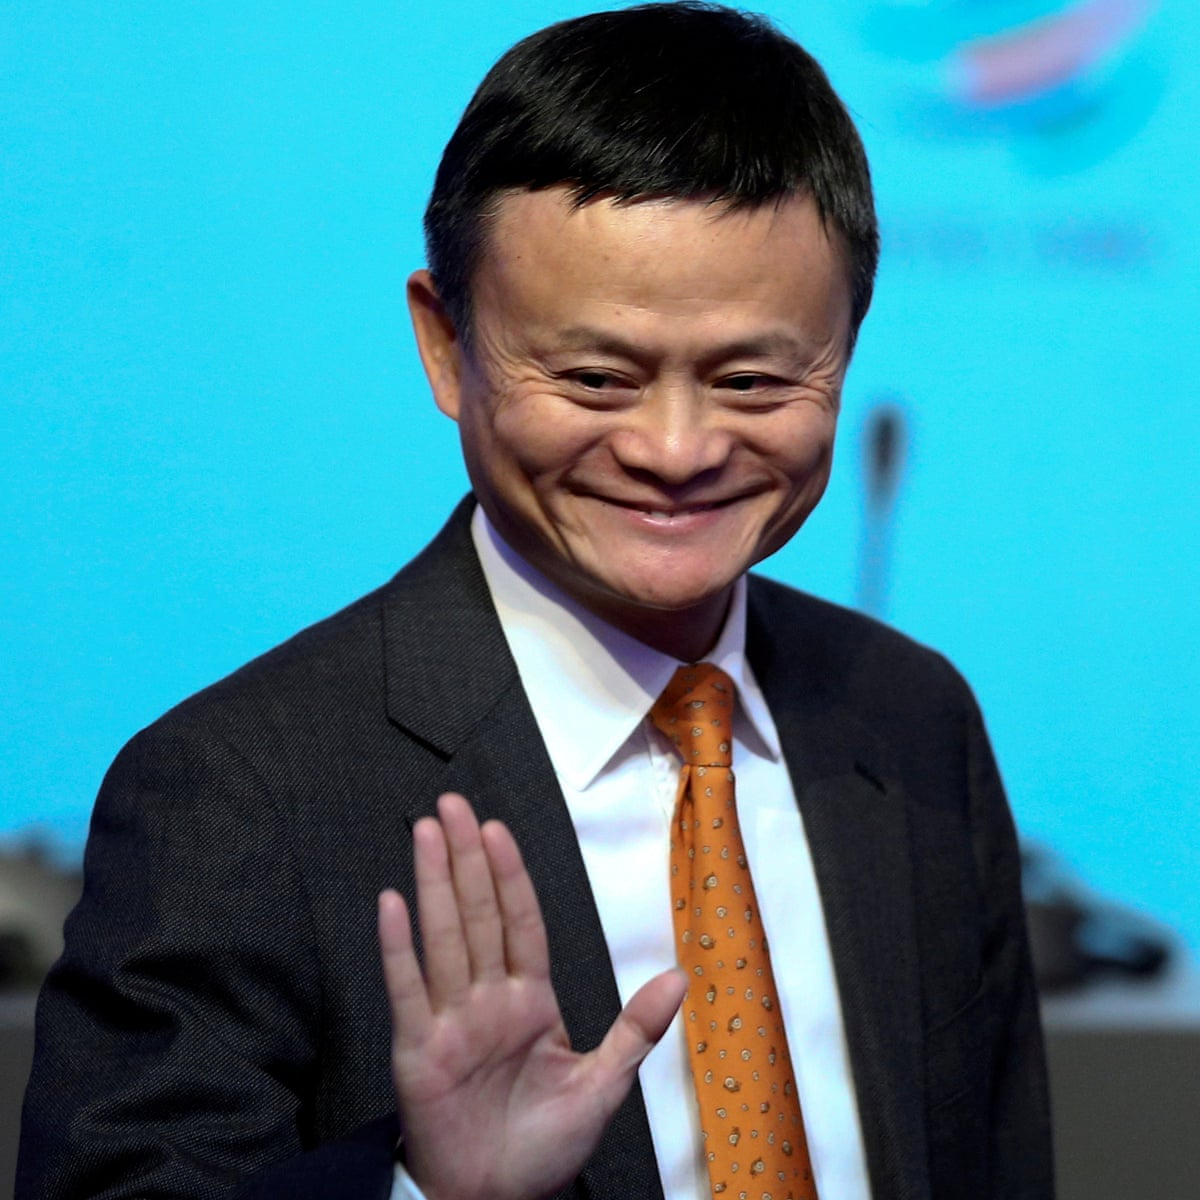 Alibaba Co Founder Jack Ma To Retire Say Reports Business The Guardian Founder and executive chairman of alibaba group jack ma attends alibaba group's 11.11 singles' day global shopping festival in shenzhen, china ma picked daniel zhang, who has been the ceo of alibaba since 2015, to replace him as chairman. alibaba co founder jack ma to retire